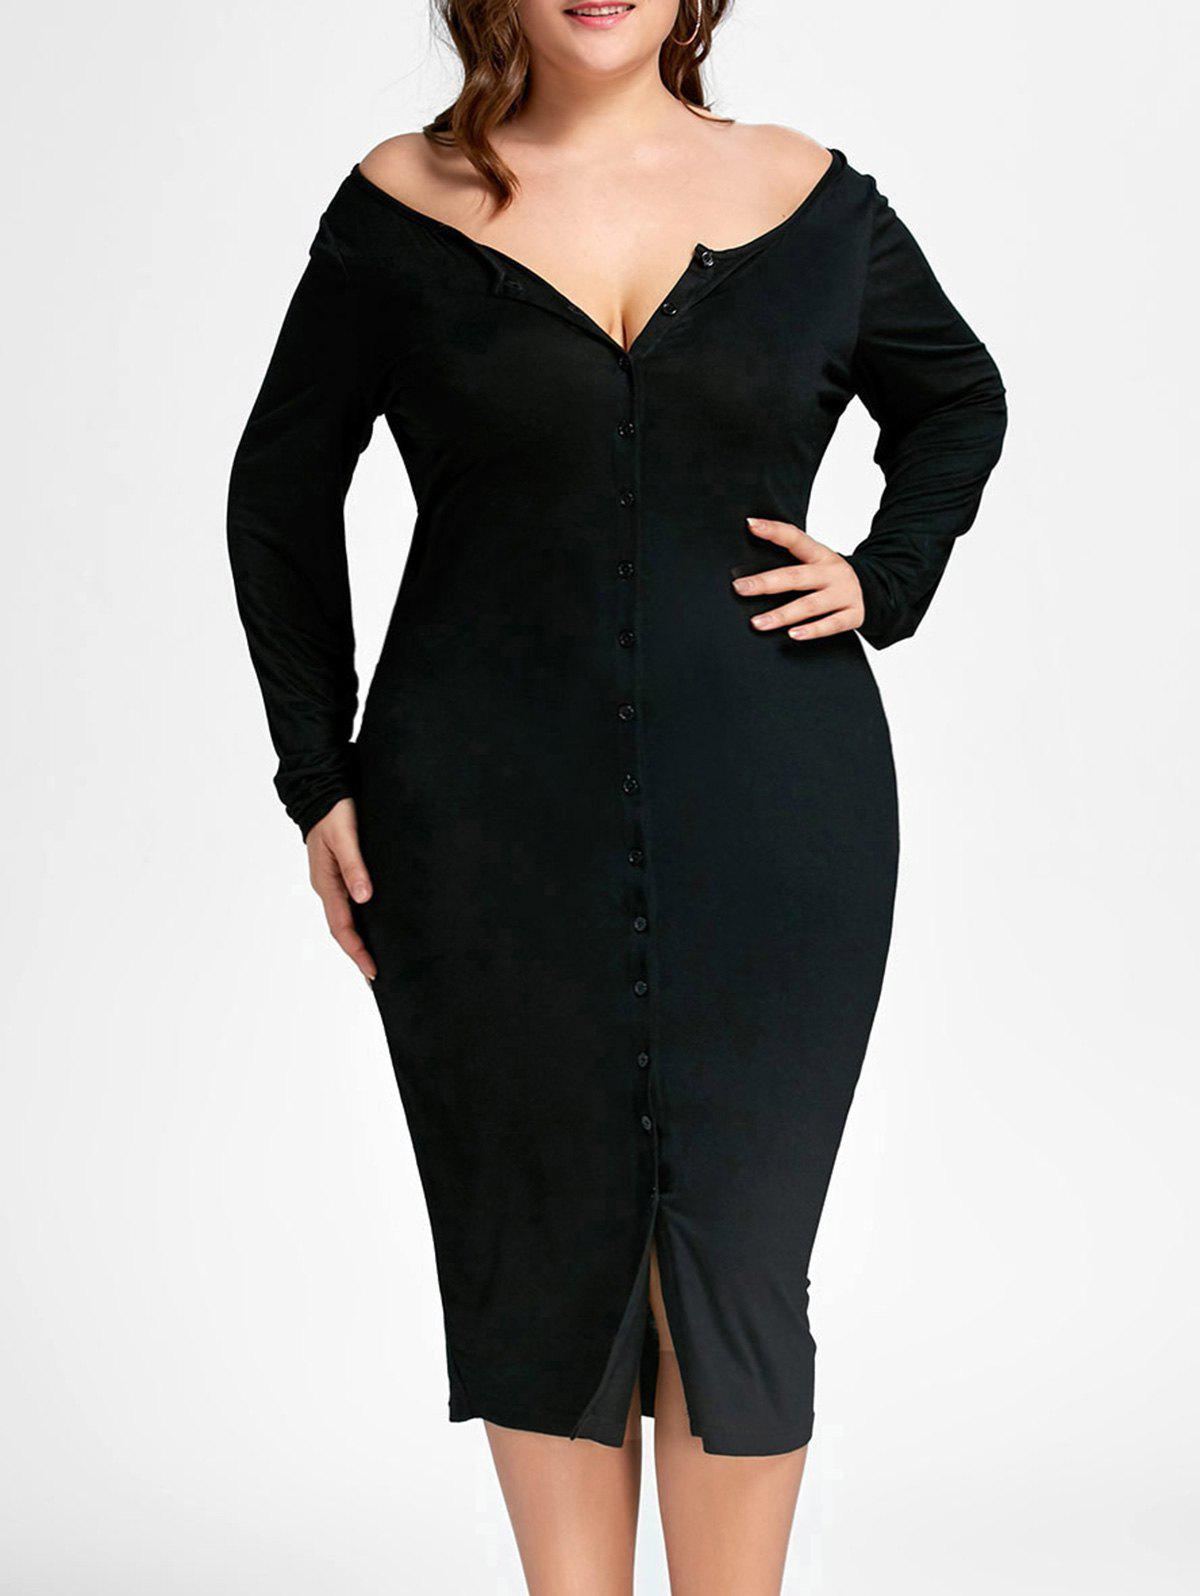 Button Up Plus Size Fitted Pencil Midi DressWOMEN<br><br>Size: XL; Color: BLACK; Style: Casual; Material: Polyester,Spandex; Silhouette: Sheath; Dresses Length: Mid-Calf; Neckline: V-Neck; Sleeve Length: Long Sleeves; Pattern Type: Solid; With Belt: No; Season: Fall,Spring; Weight: 0.3840kg; Package Contents: 1 x Dress;